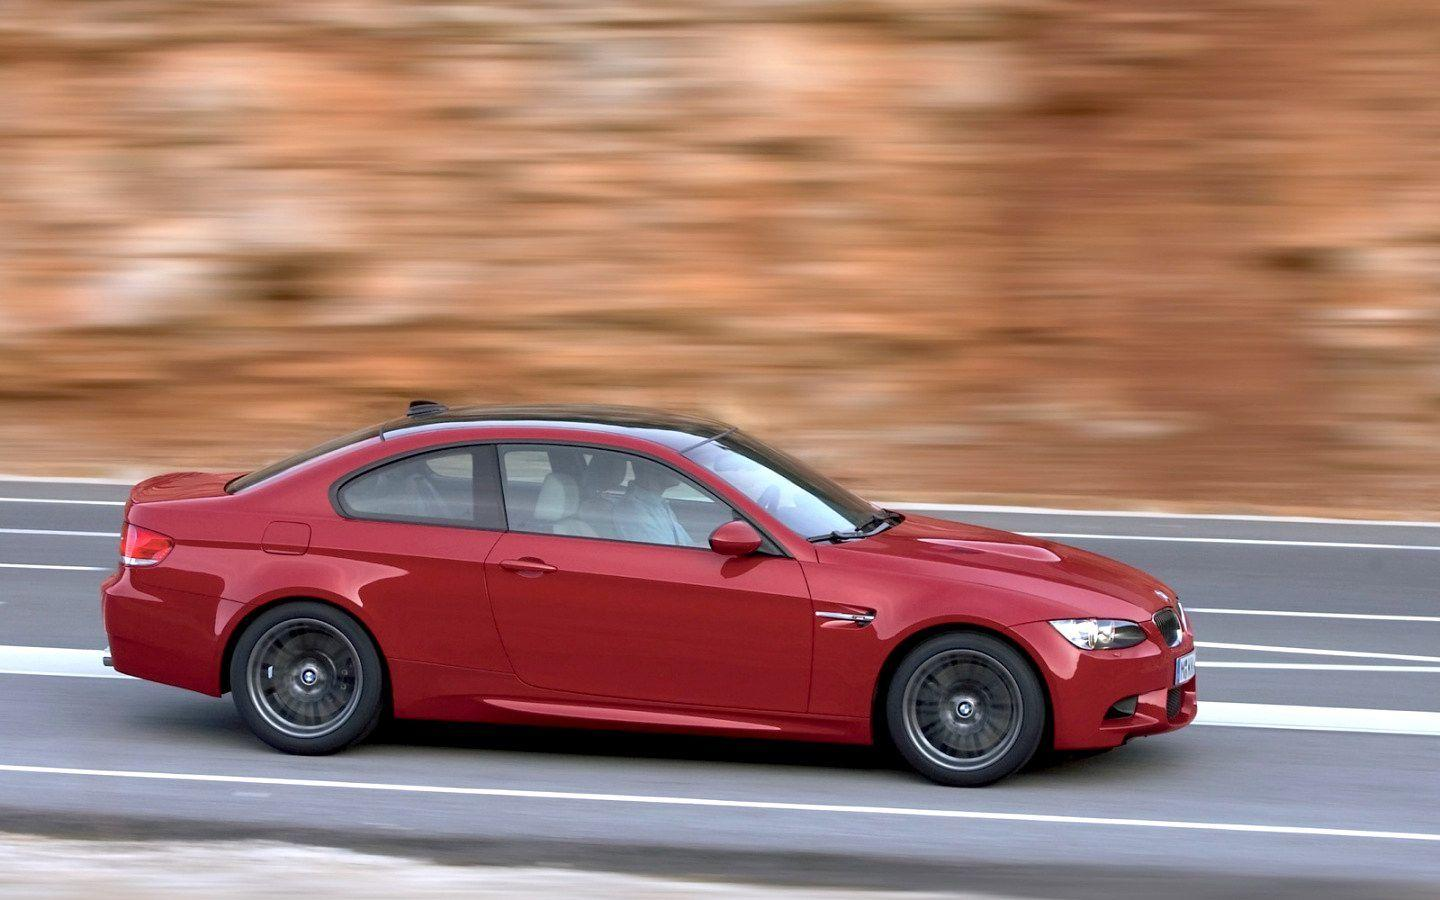 2008 BMW M3 Wallpaper 16 - 1440x900